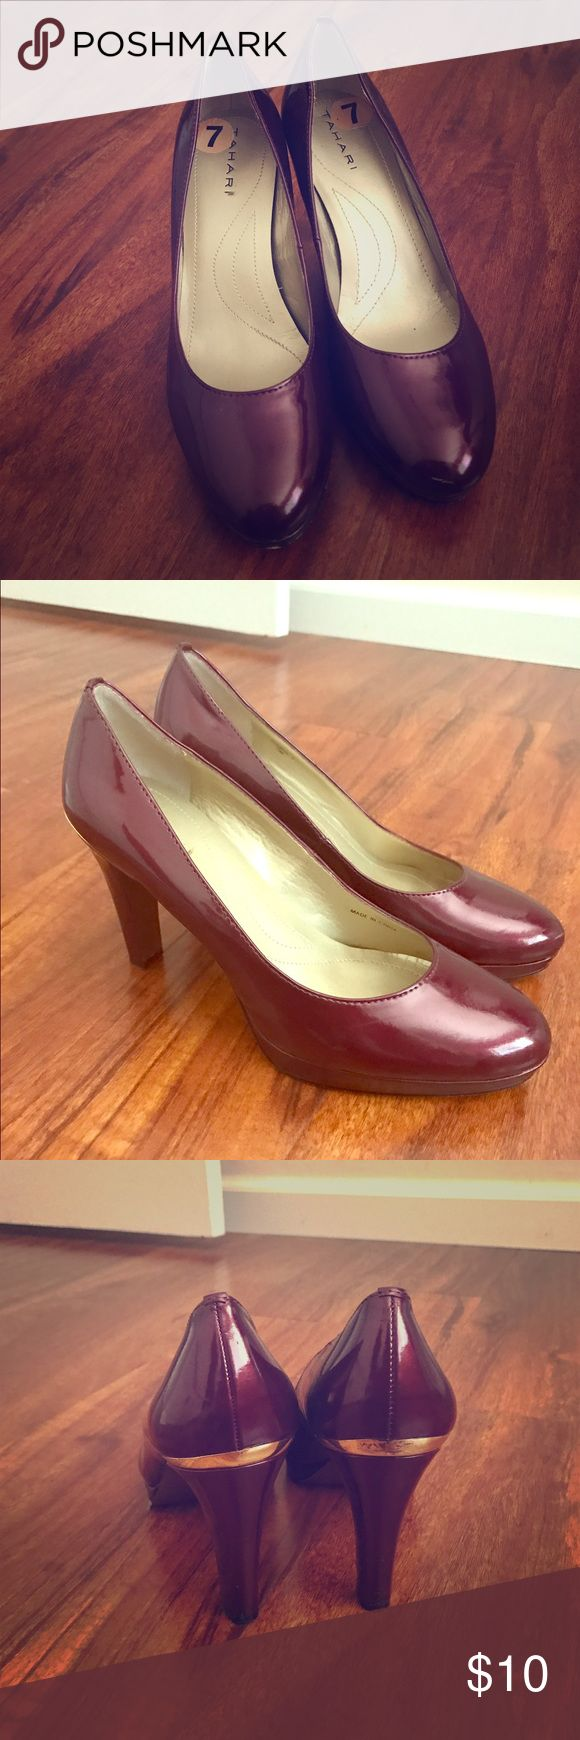 Red pump shoe Like new. Great for office wear or formal events. Tahari Shoes Heels